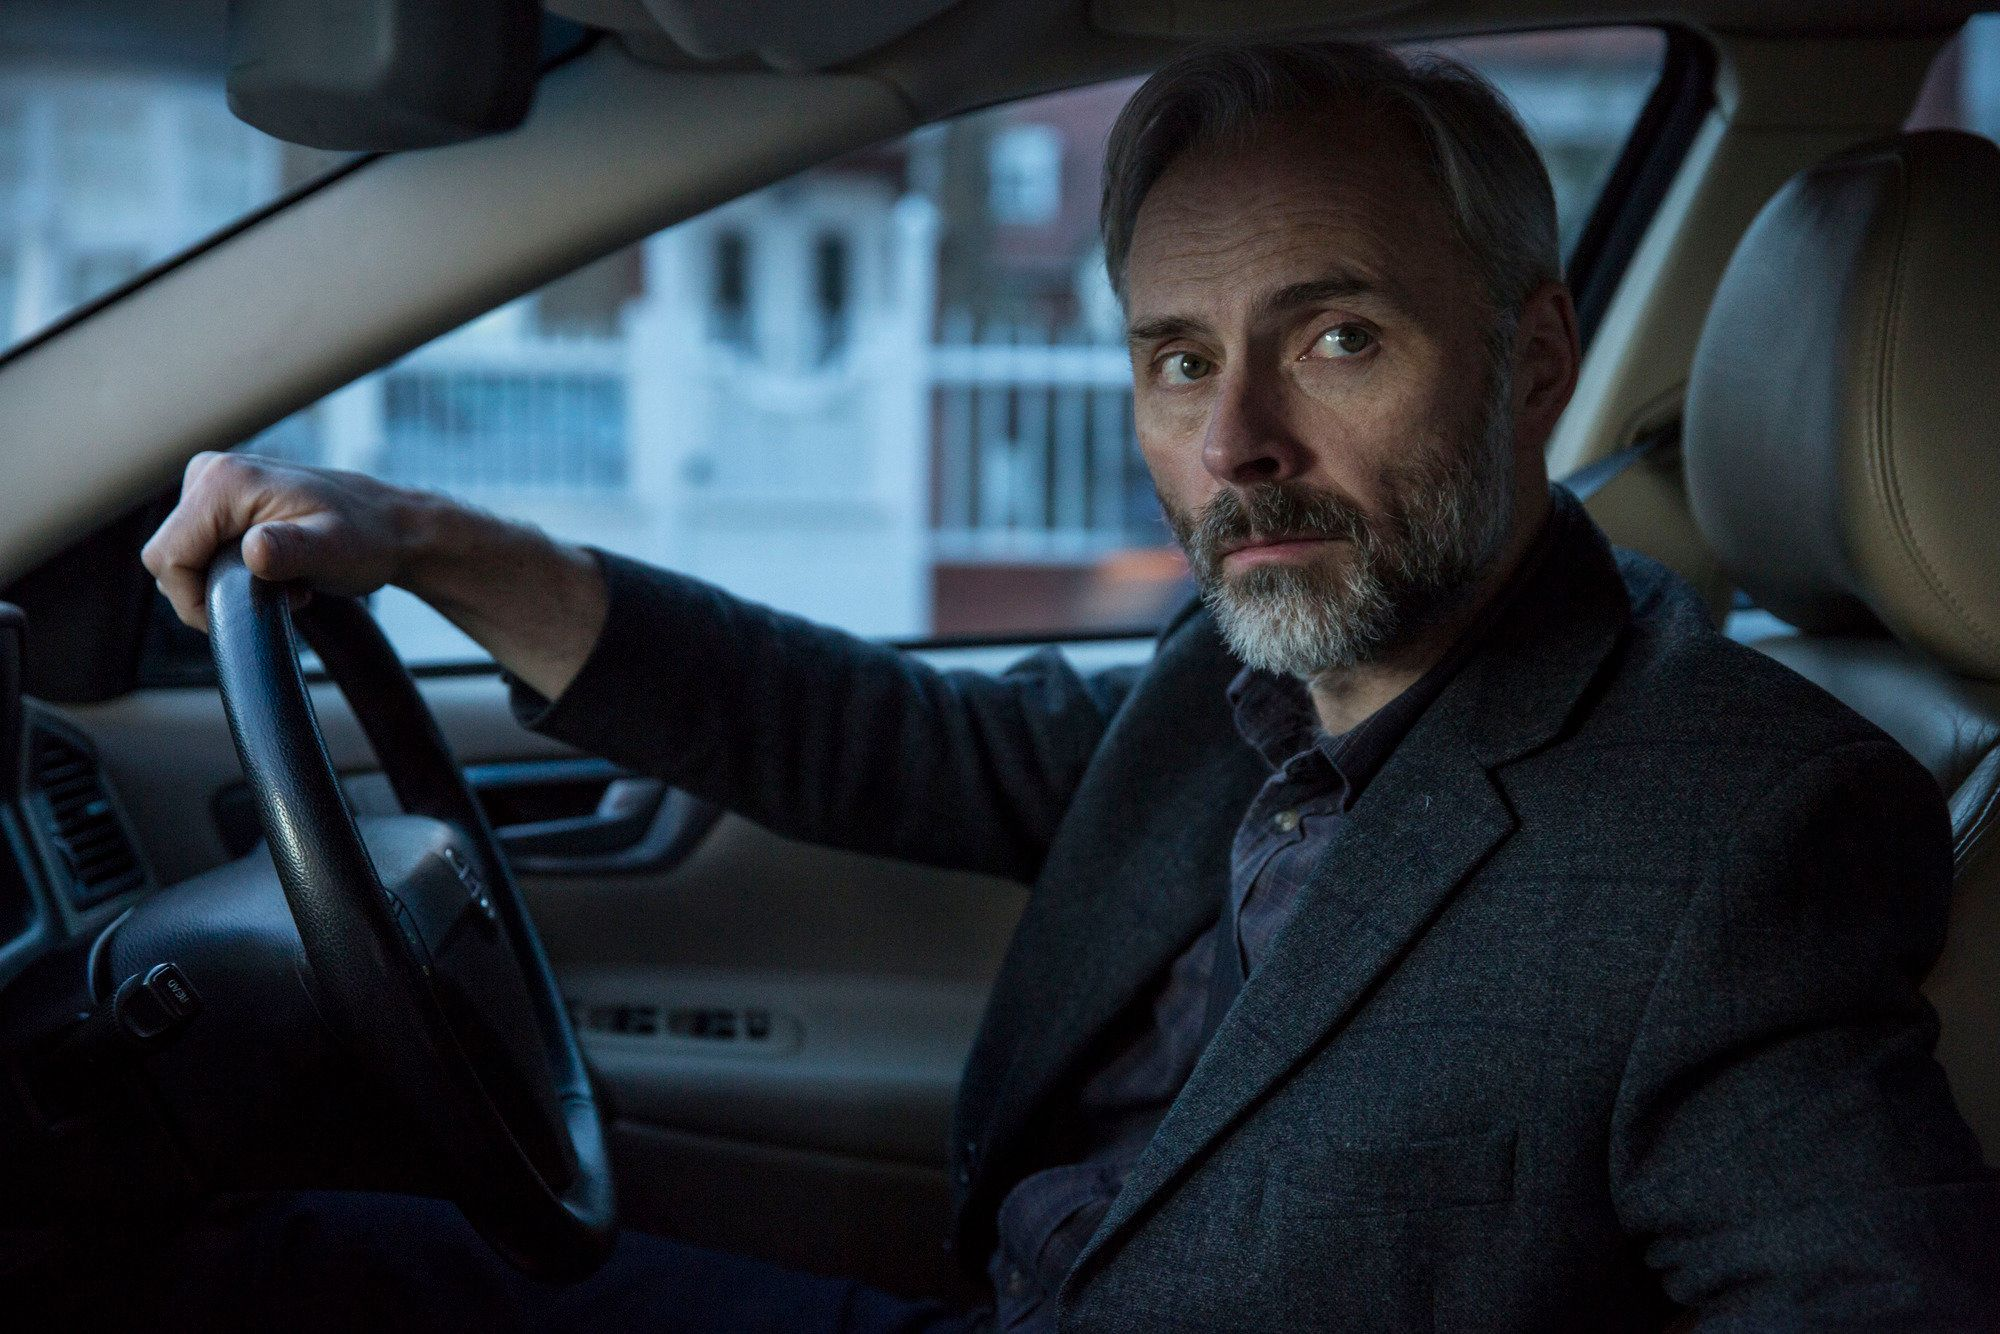 Mark Bonnar plays flawed but supportive husband Gary in 'Apple Tree Yard' which concludes